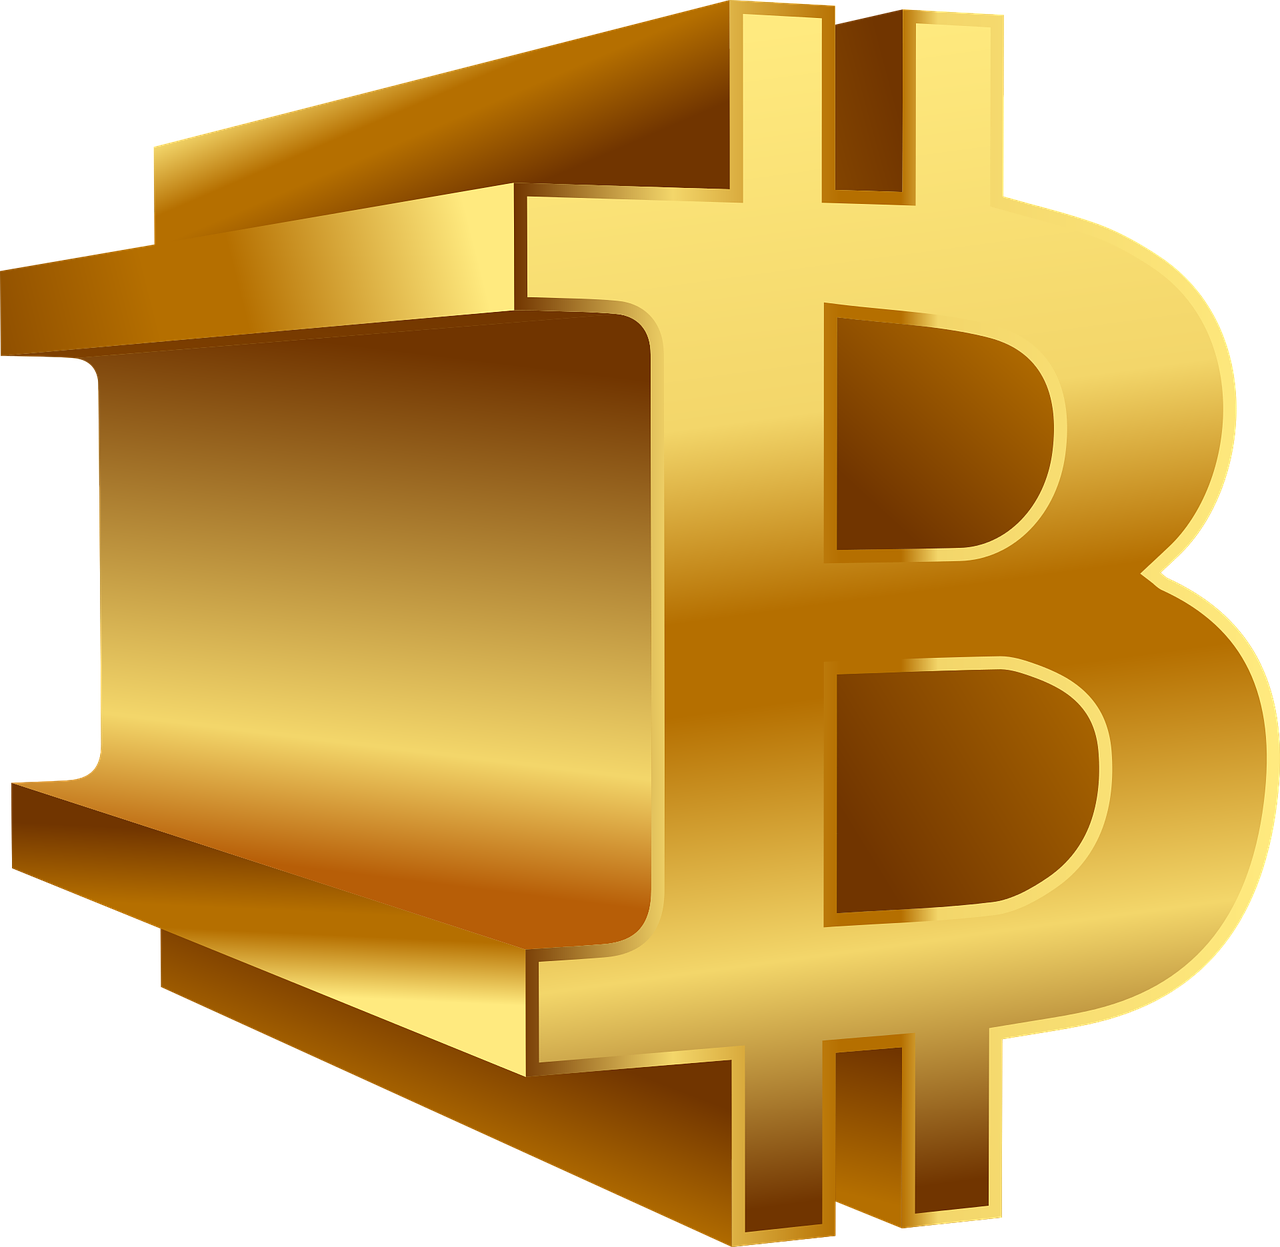 Bitcoin,blockchain,currency,finance,crypto - free photo from